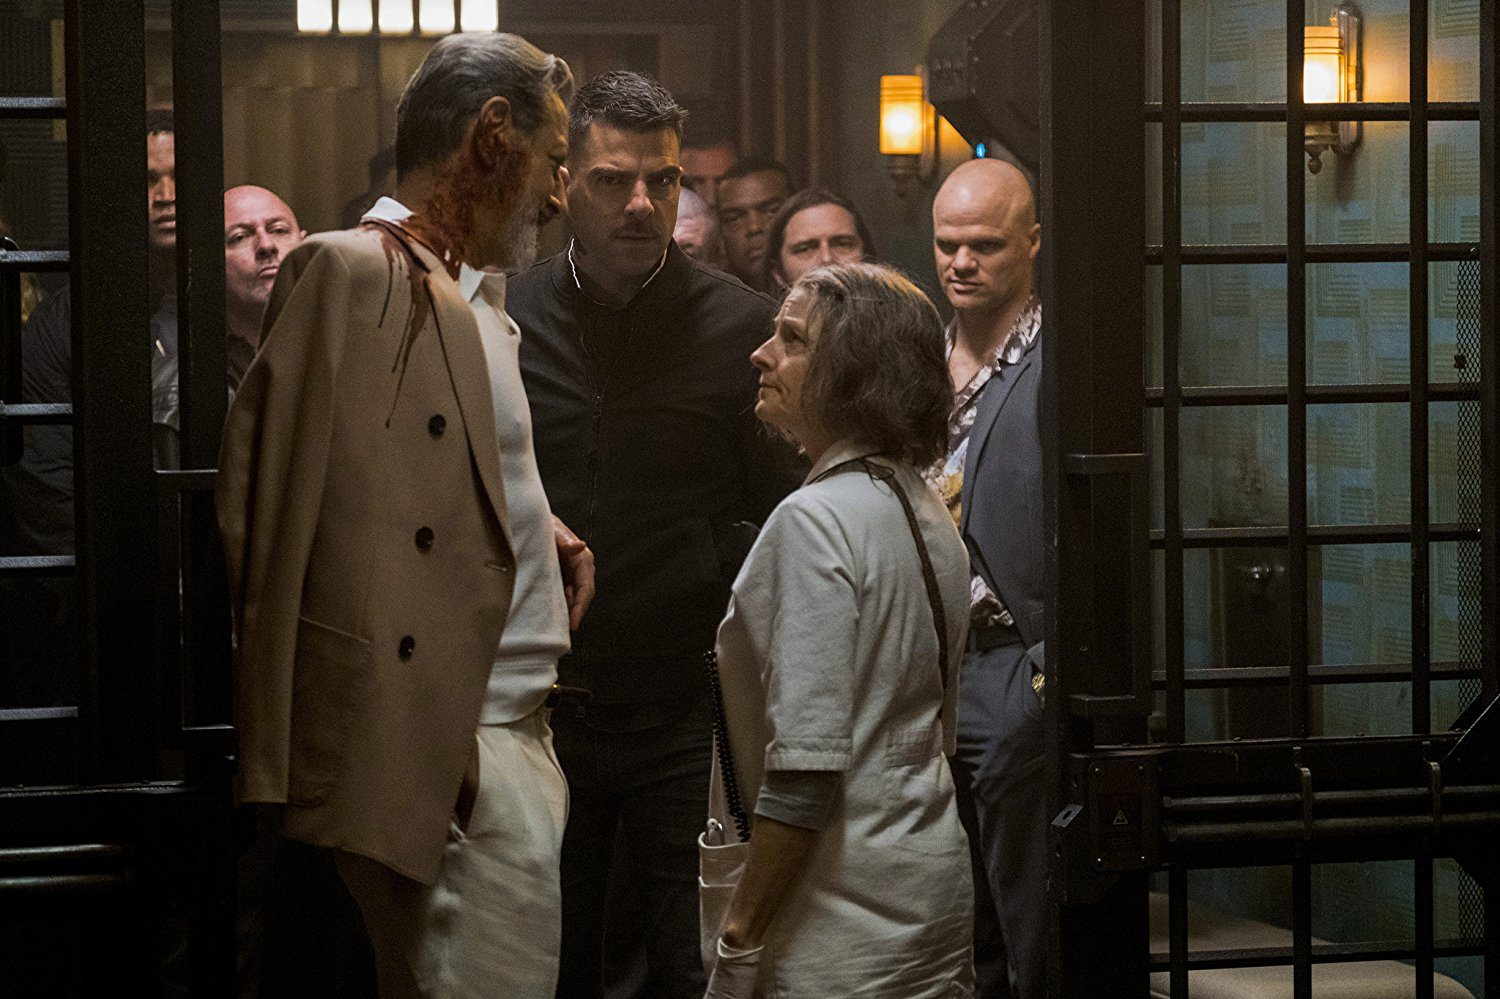 hotel artemis, movie review, lucas mirabella